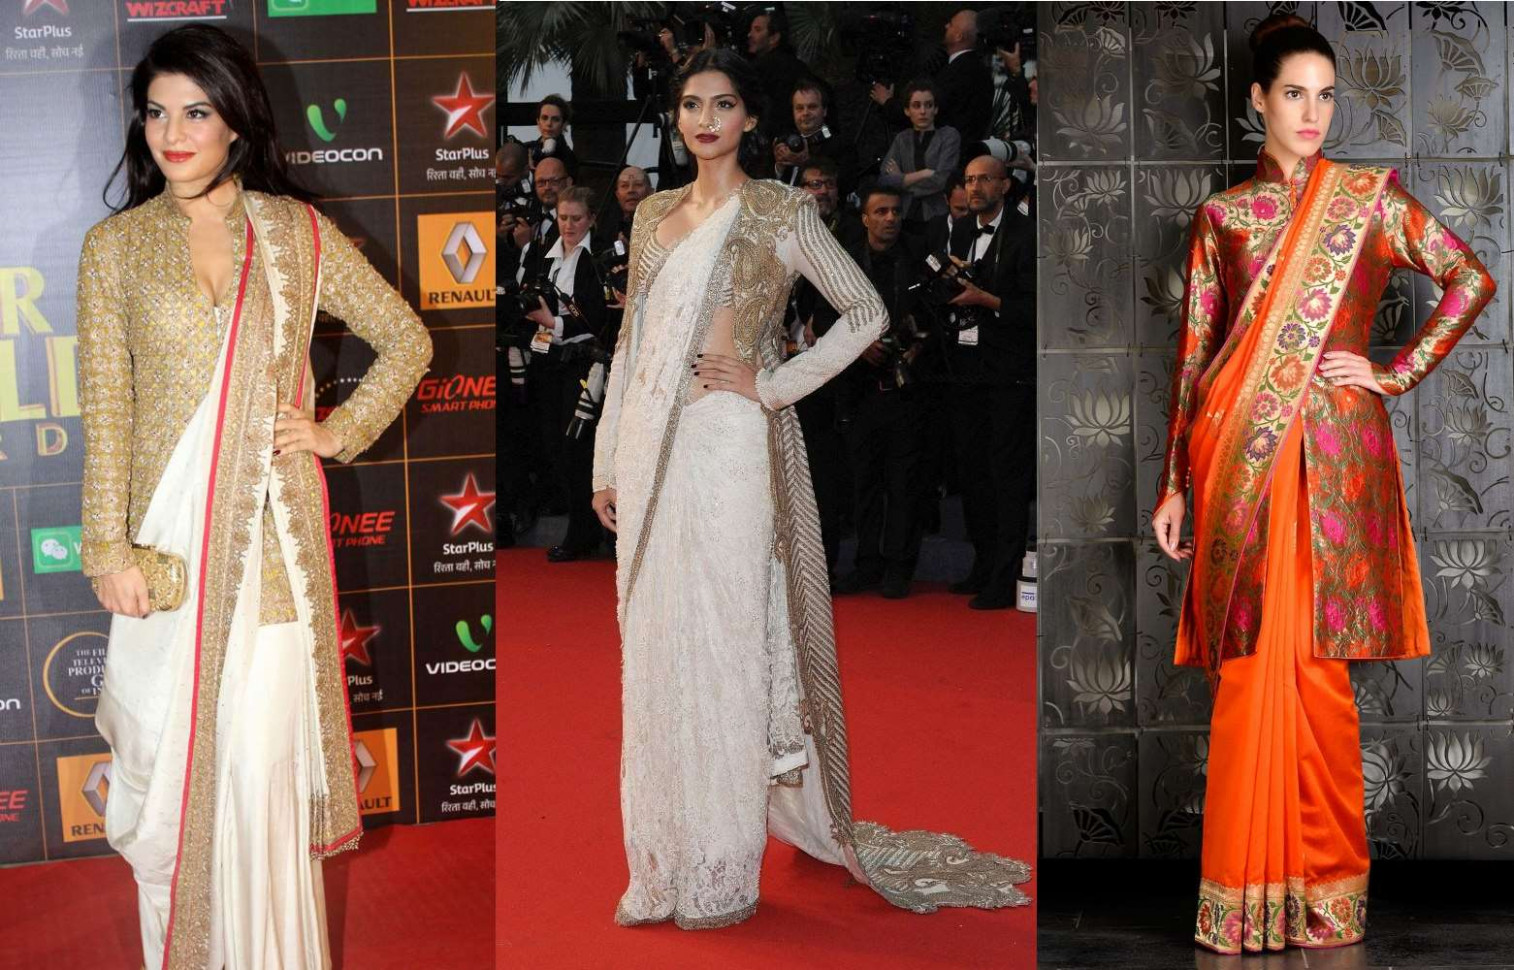 11 Saree Blouse Designs To Rock This Wedding Season